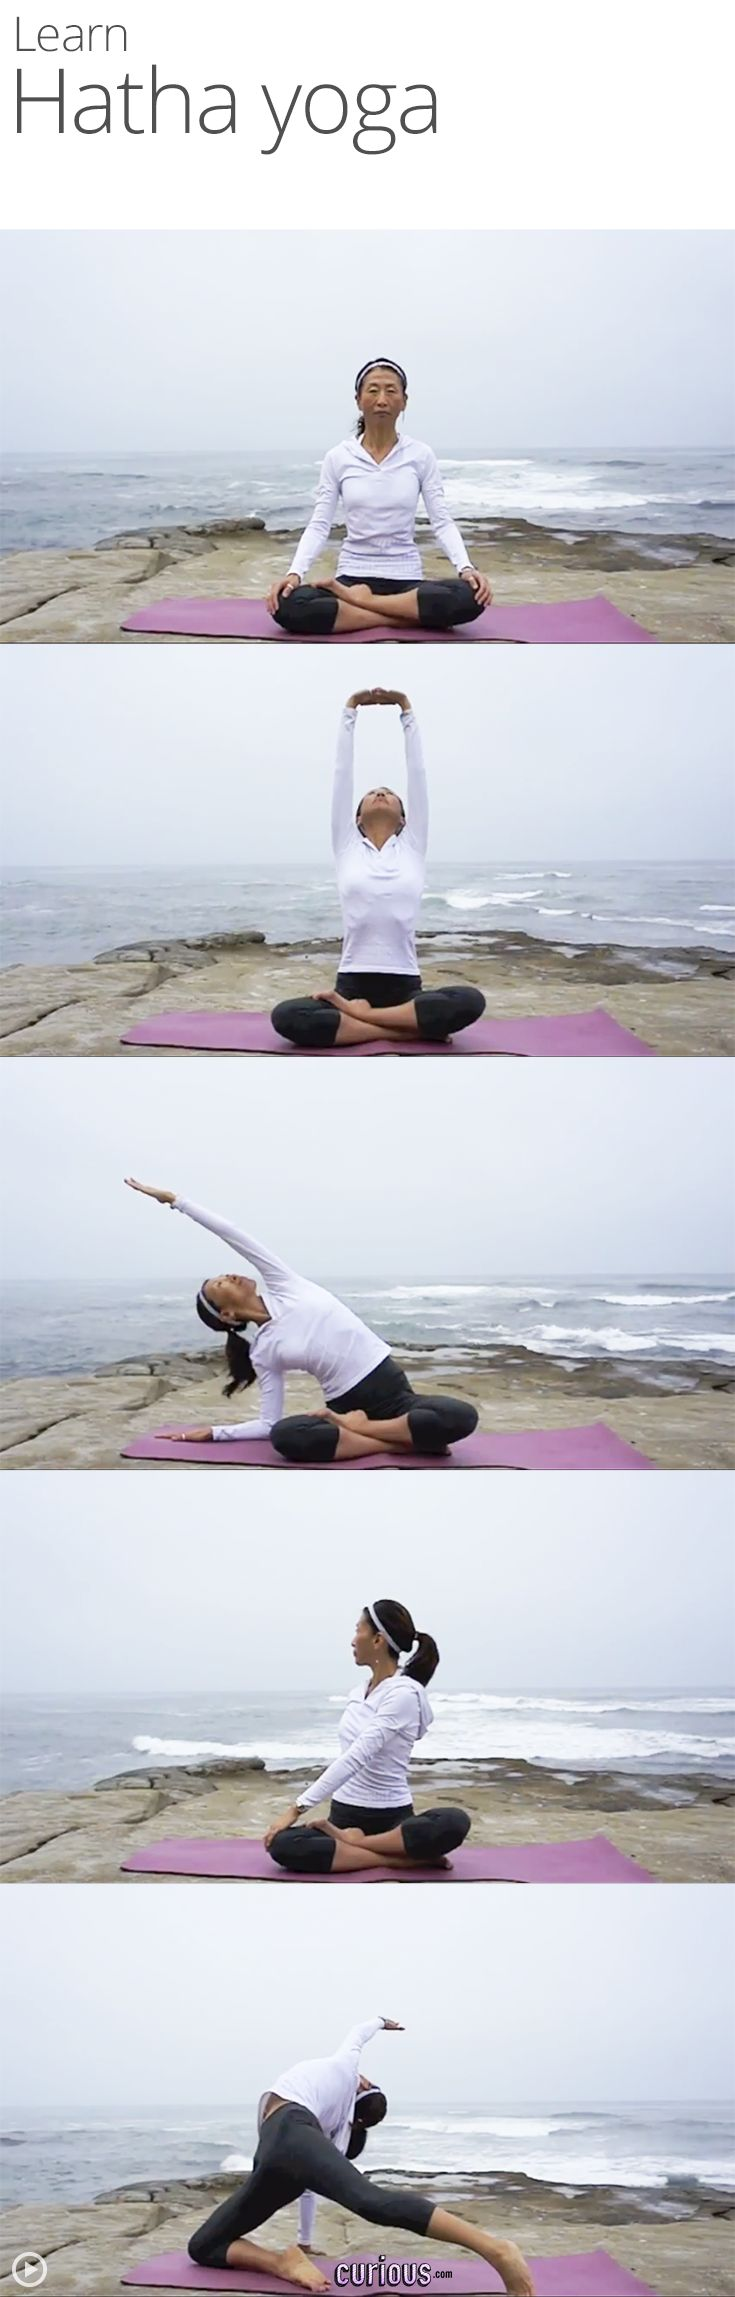 Previous pinner says Hatha Yoga Flow I have been doing this type of yoga and my stress level has gone down tremendously and my legs arms and stomach are beginningto get toned love this